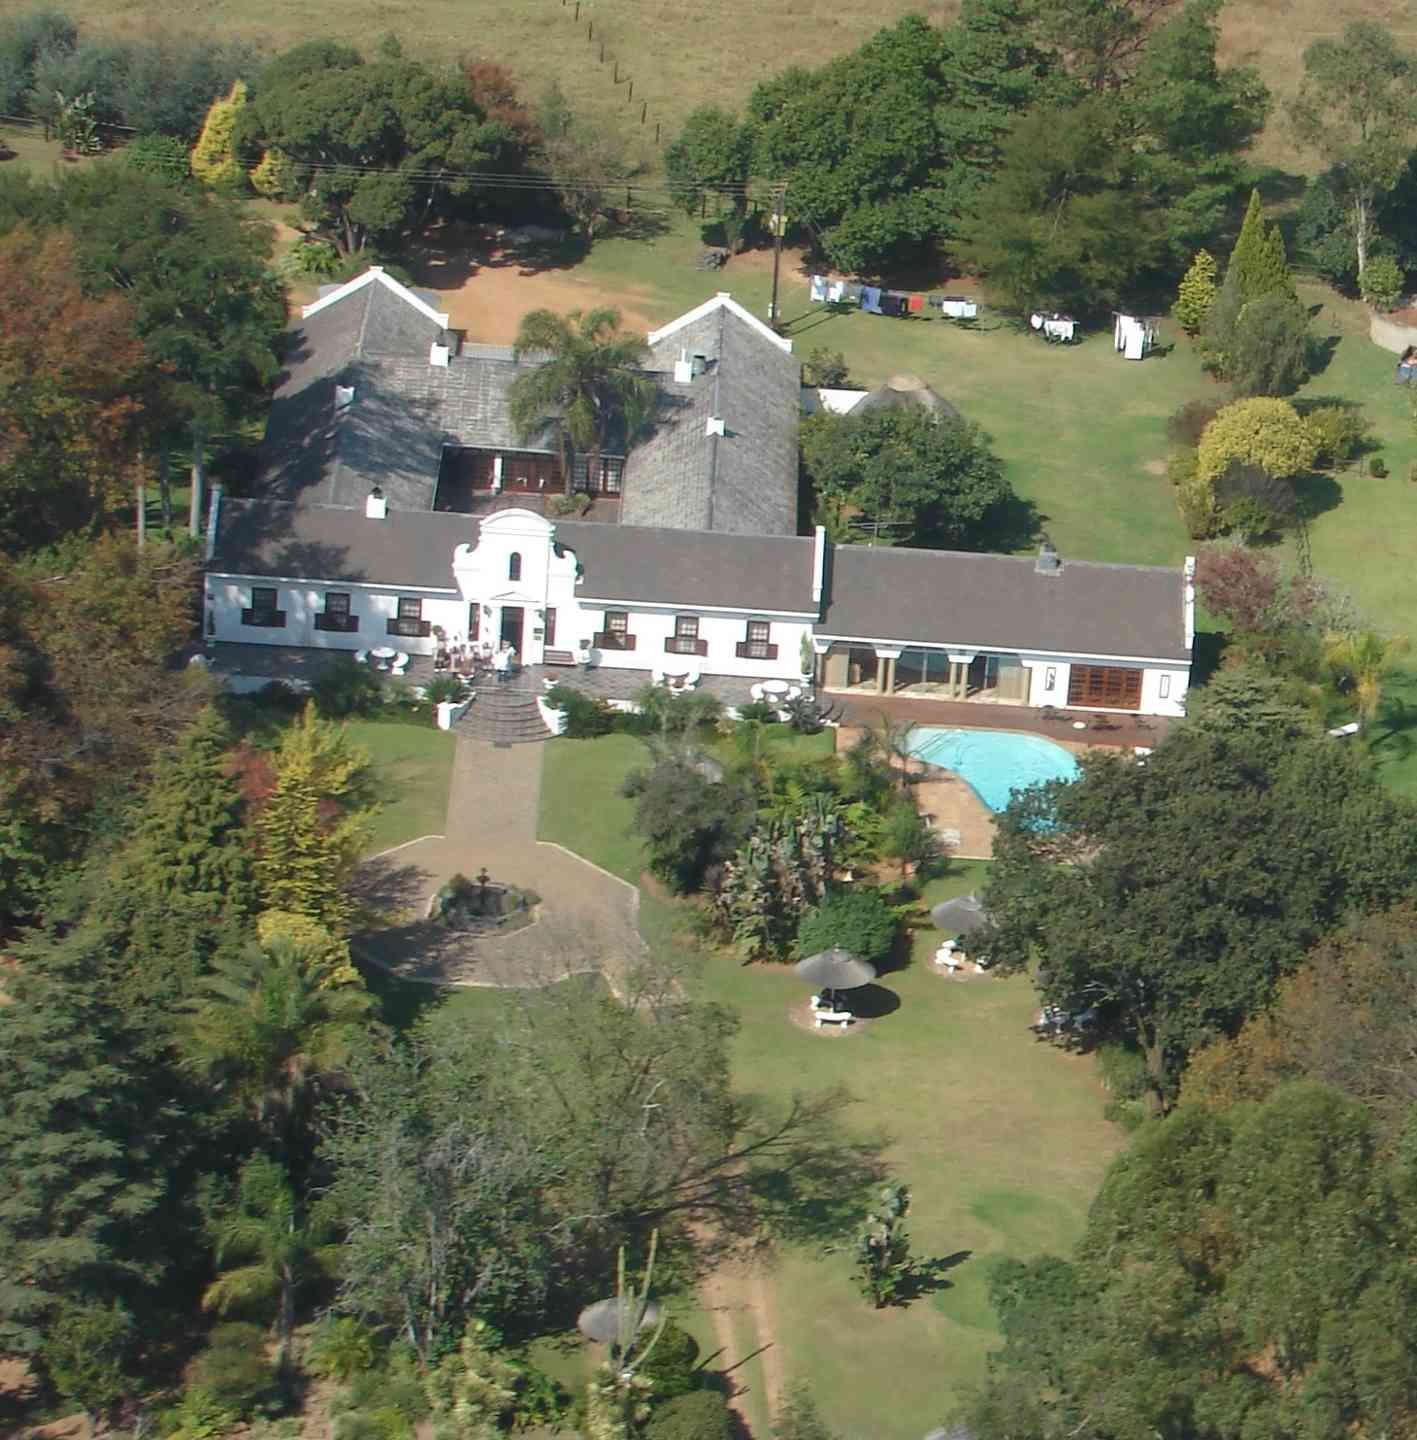 Piet Retief South Africa  City new picture : Welgekozen Country Lodge, Piet Retief, South Africa